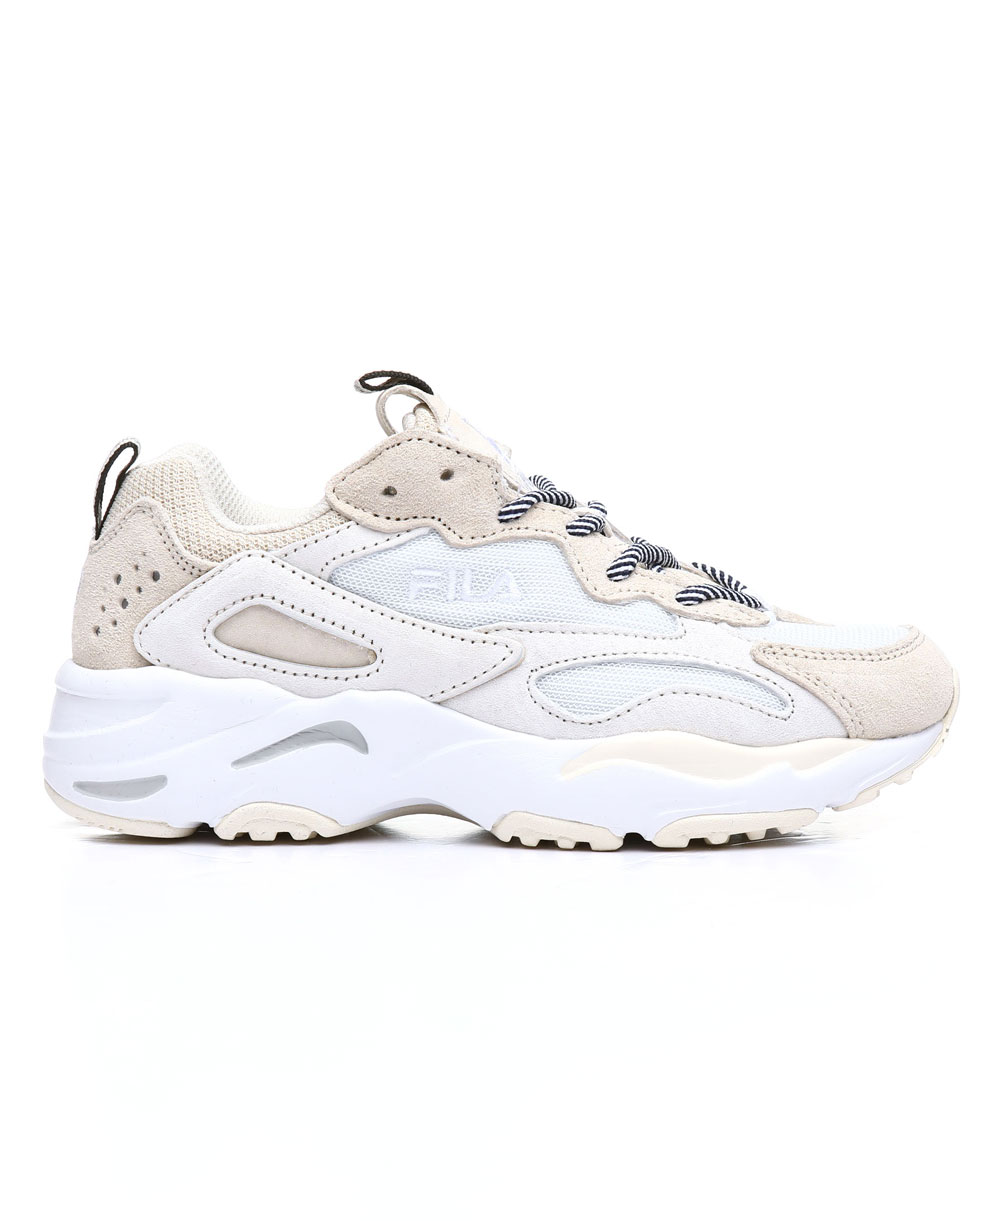 e9d6fb4a538 Fila Ray Tracer Chaussures Sneakers Femme Beige